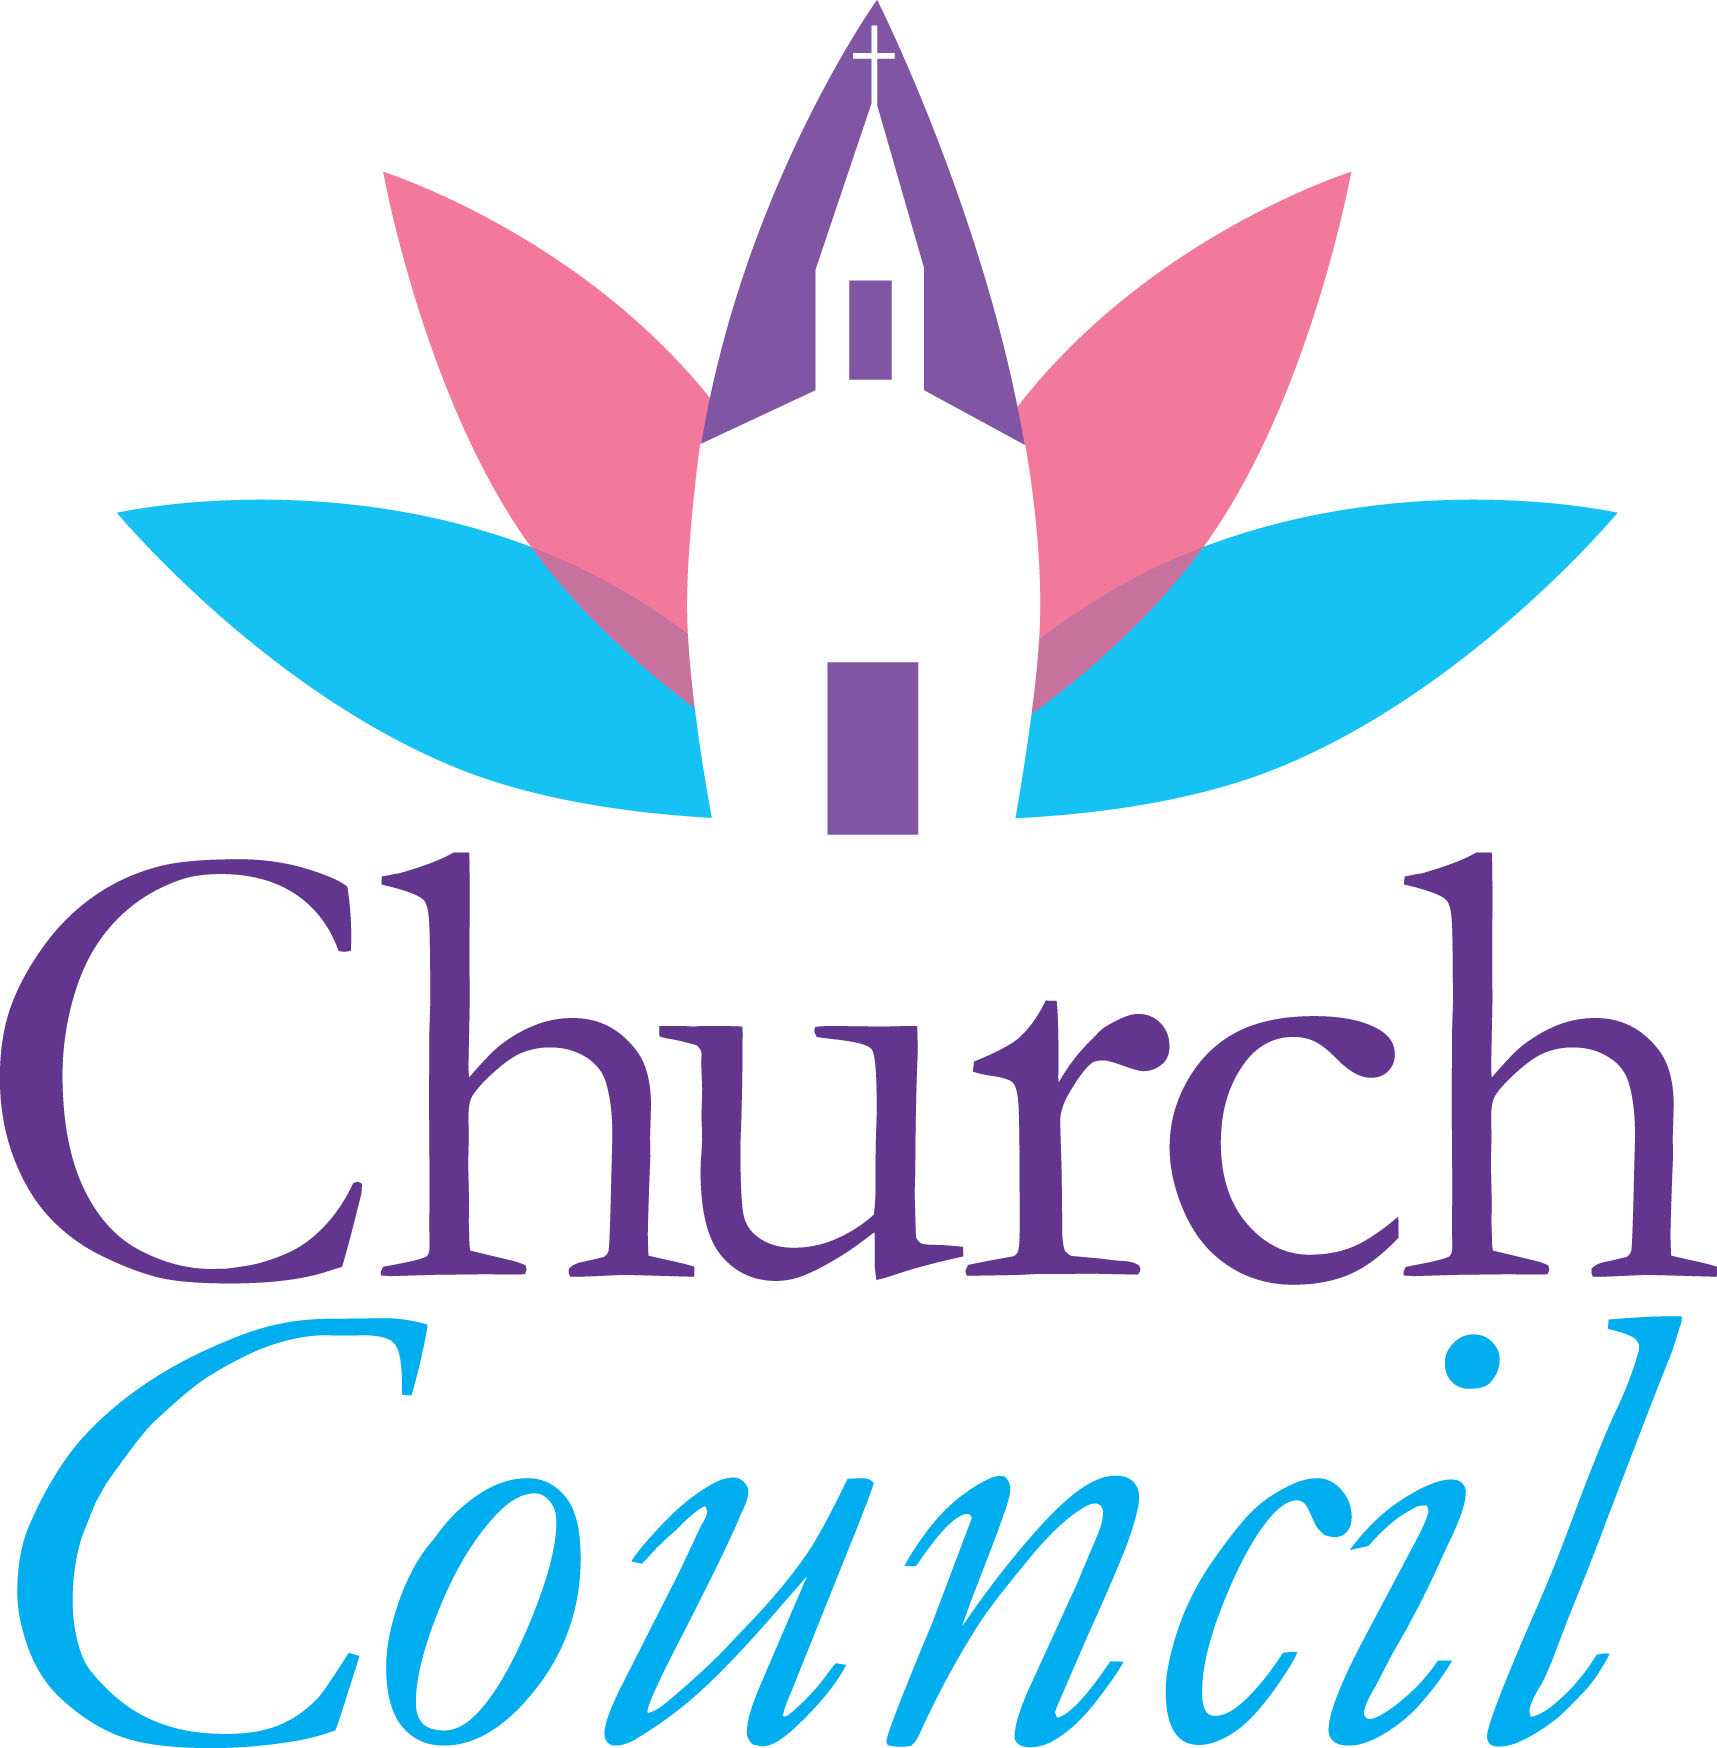 Church Council Clipart (103+ images in Collection) Page 1.